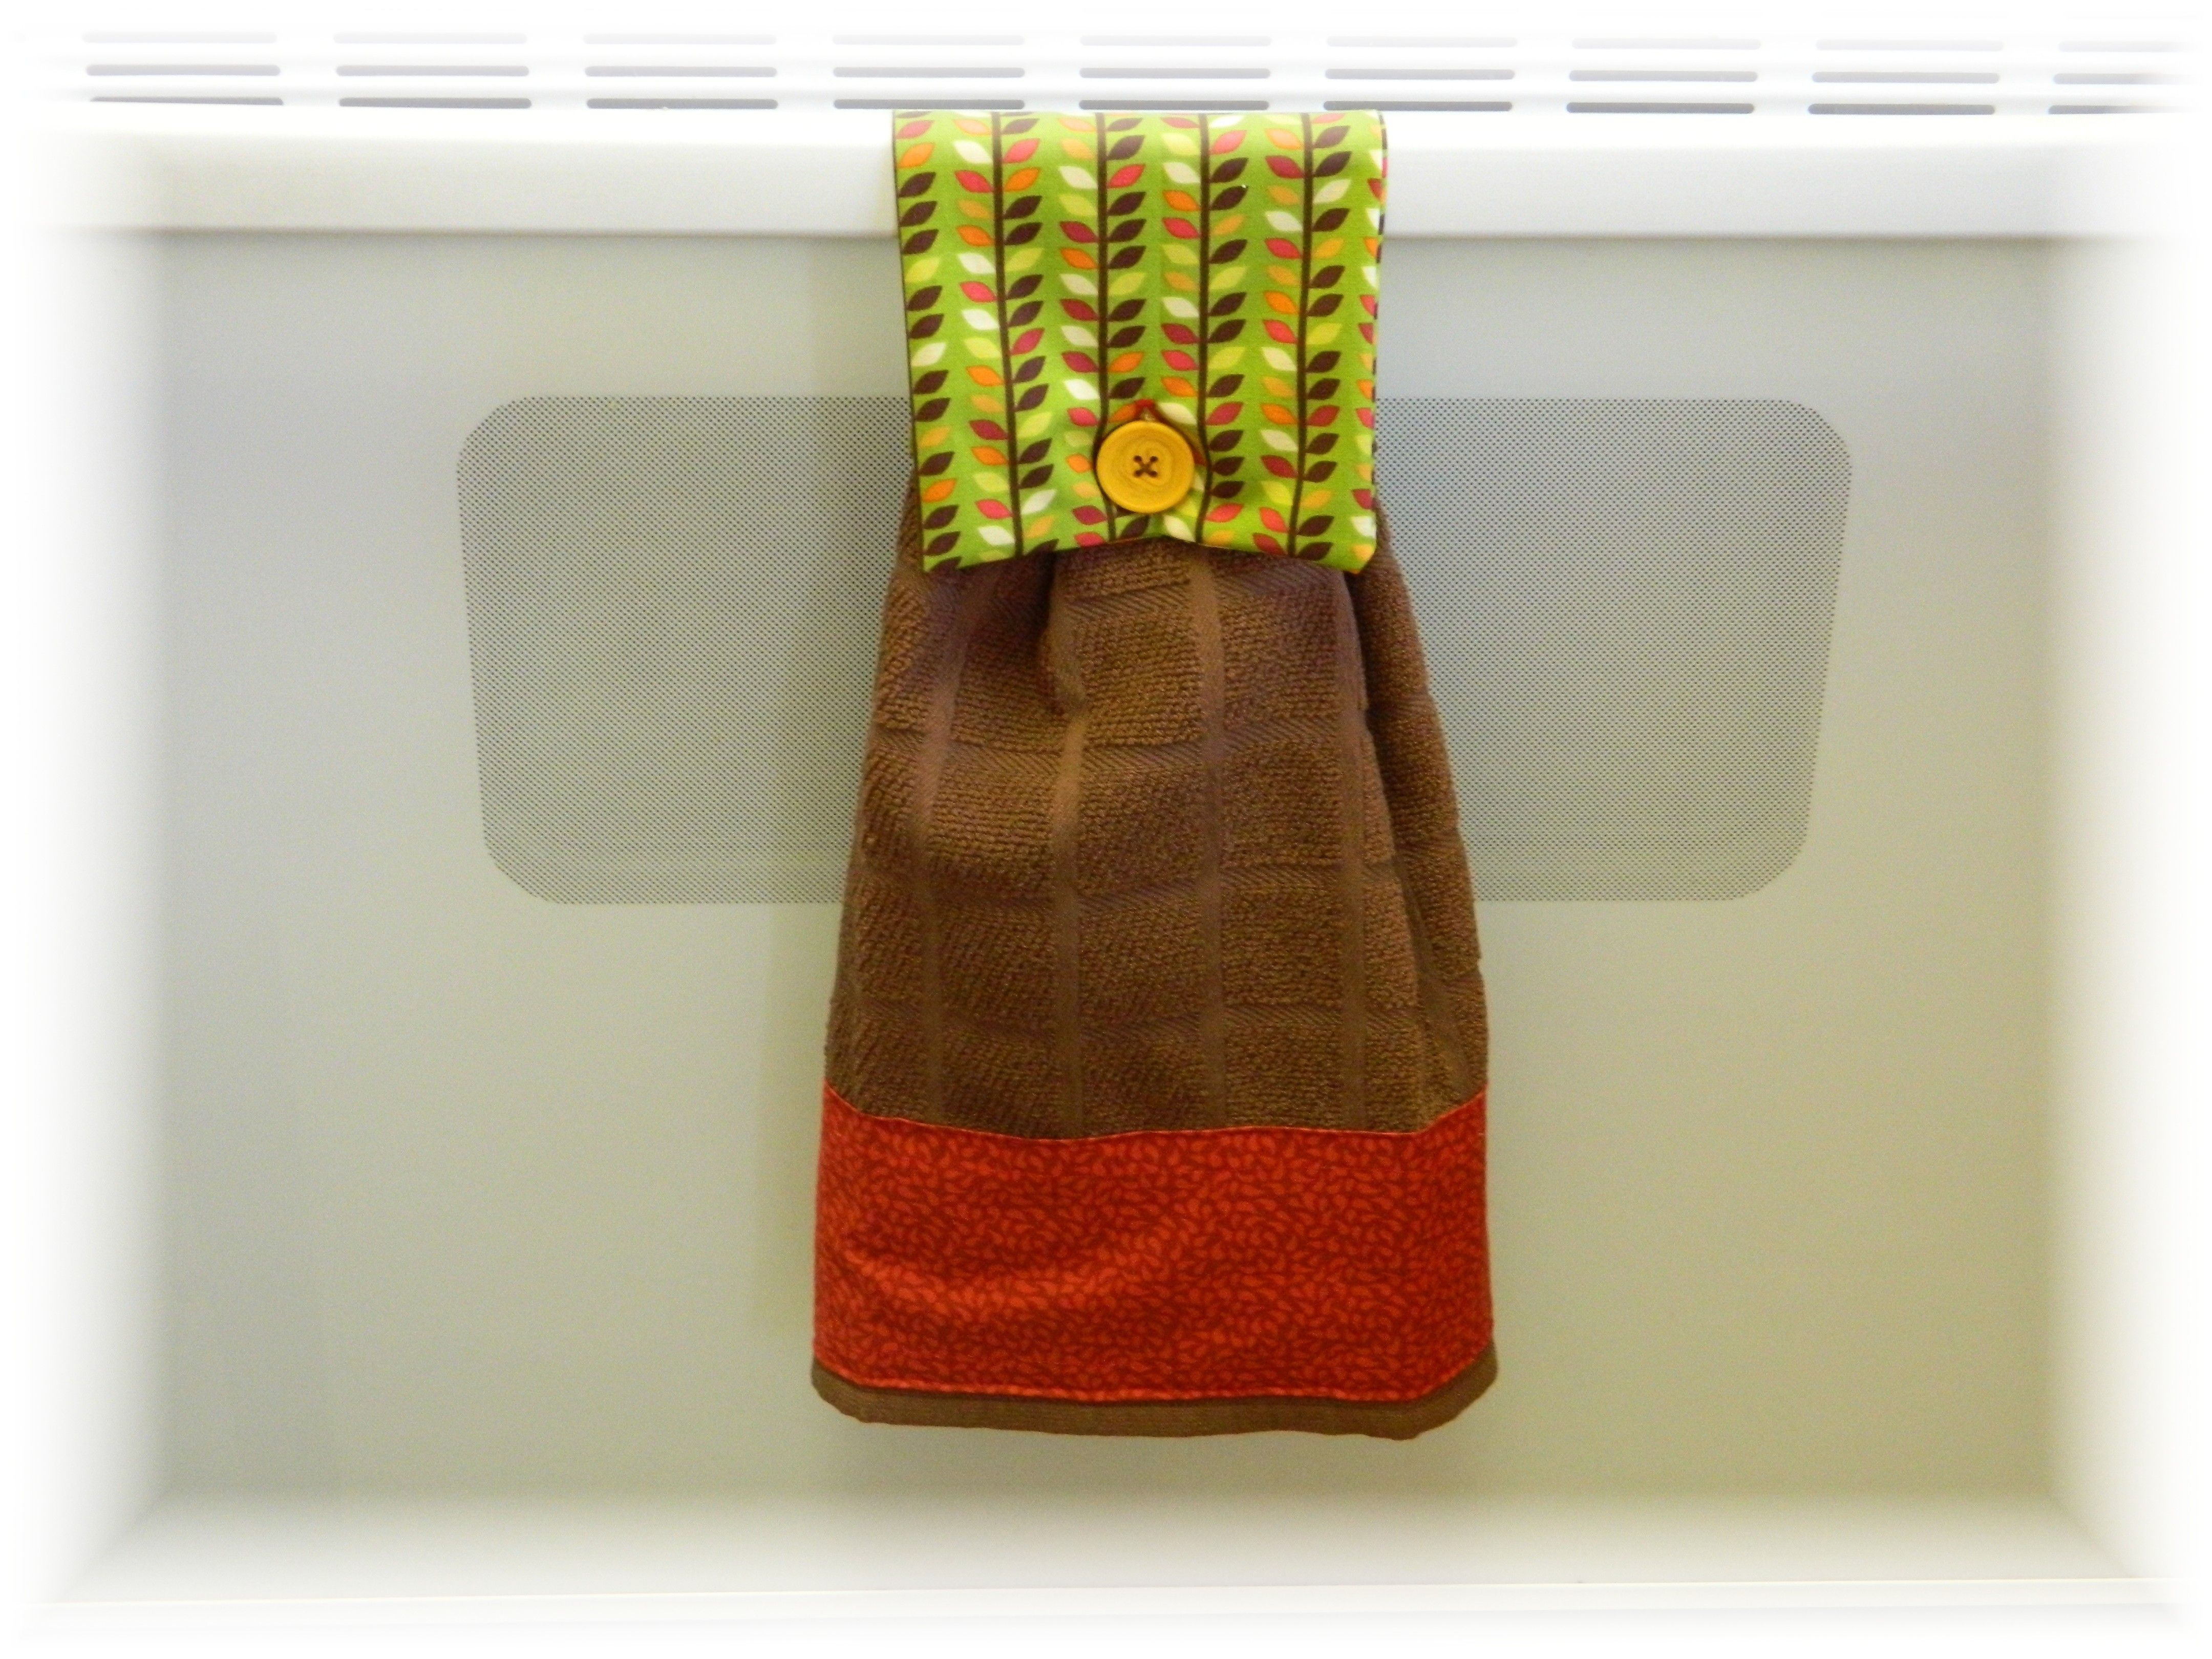 Oven towel tutorial toddler proof a sewing crochet knitting pinterest toddler proofing - Hanging kitchen towel tutorial ...